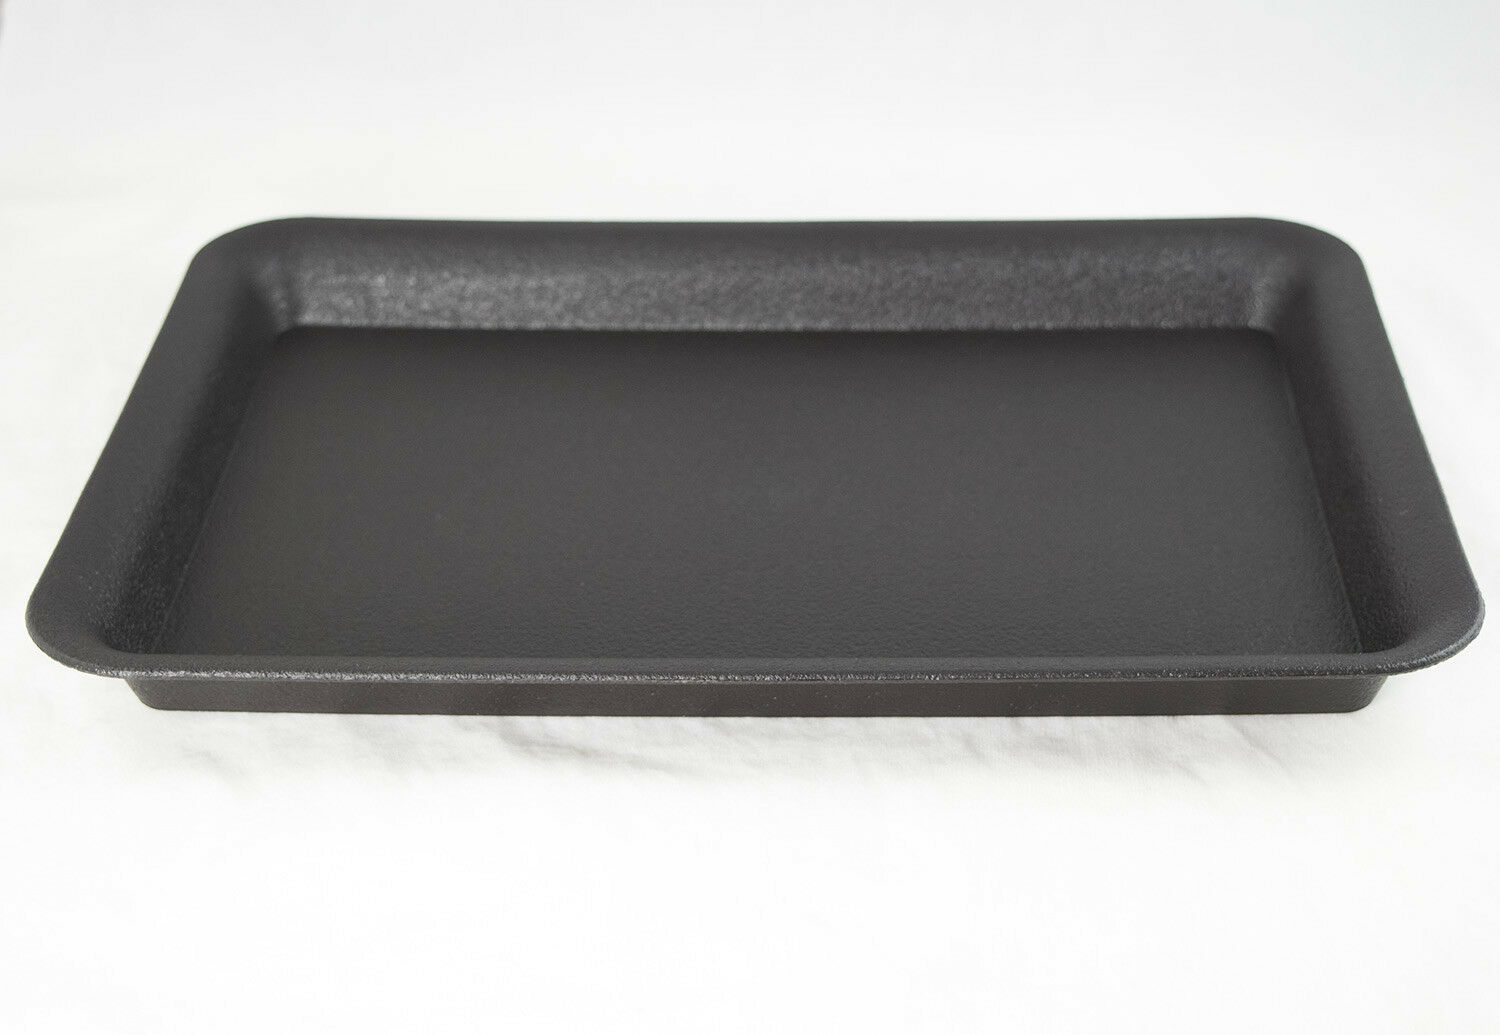 Large Plastic Humidity Tray For Bonsai Tree Indoor Plants 15 5 X 10 75 X 1 25 For Sale Online